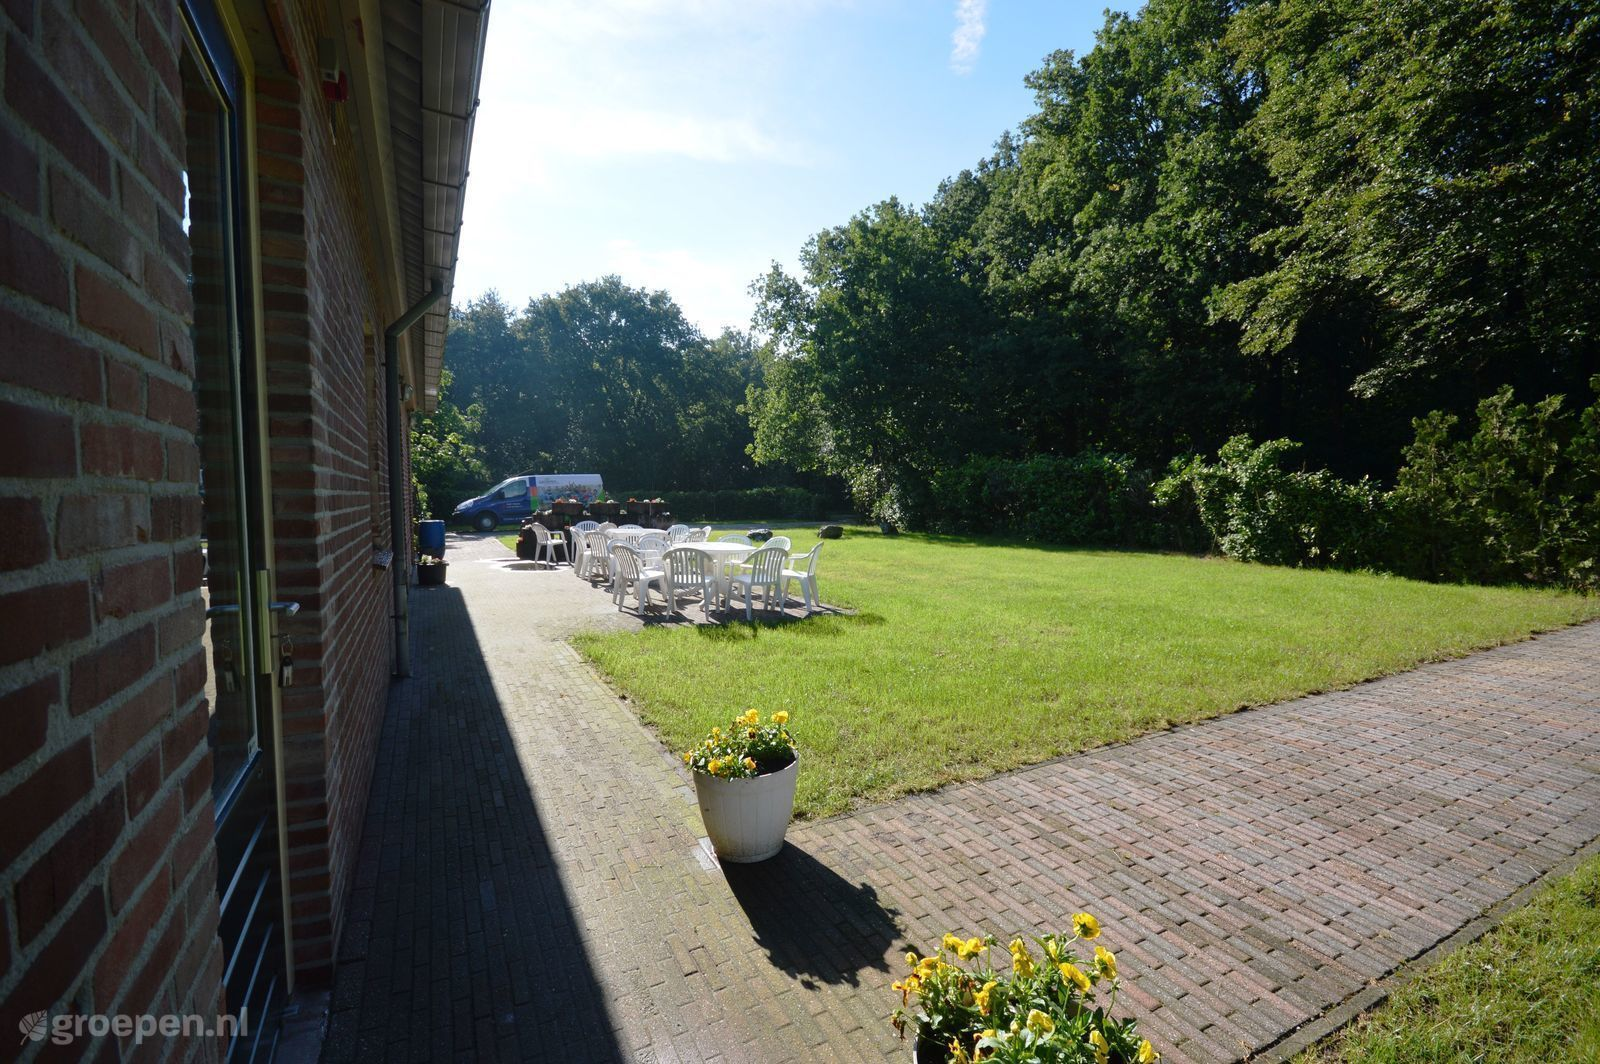 Group accommodation Odiliapeel